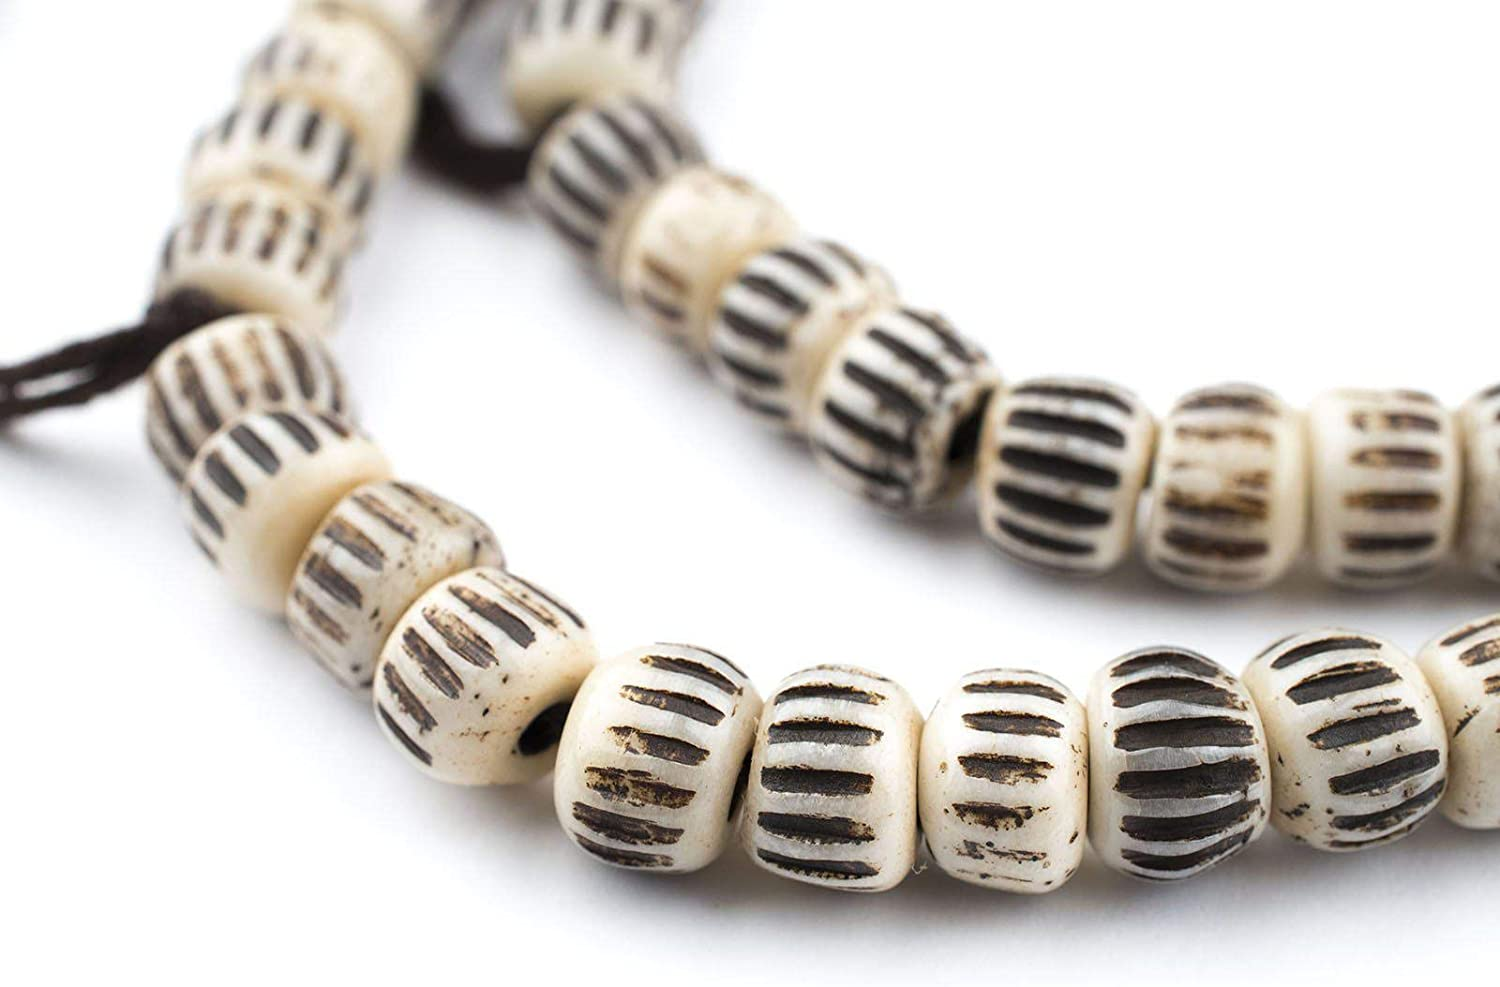 Amazon Com Thebeadchest Cream Vintage Style Carved Chevron Bone Prayer Beads 8mm Nepal Brown Round Large Hole 27 Inch Strand Arts Crafts Sewing